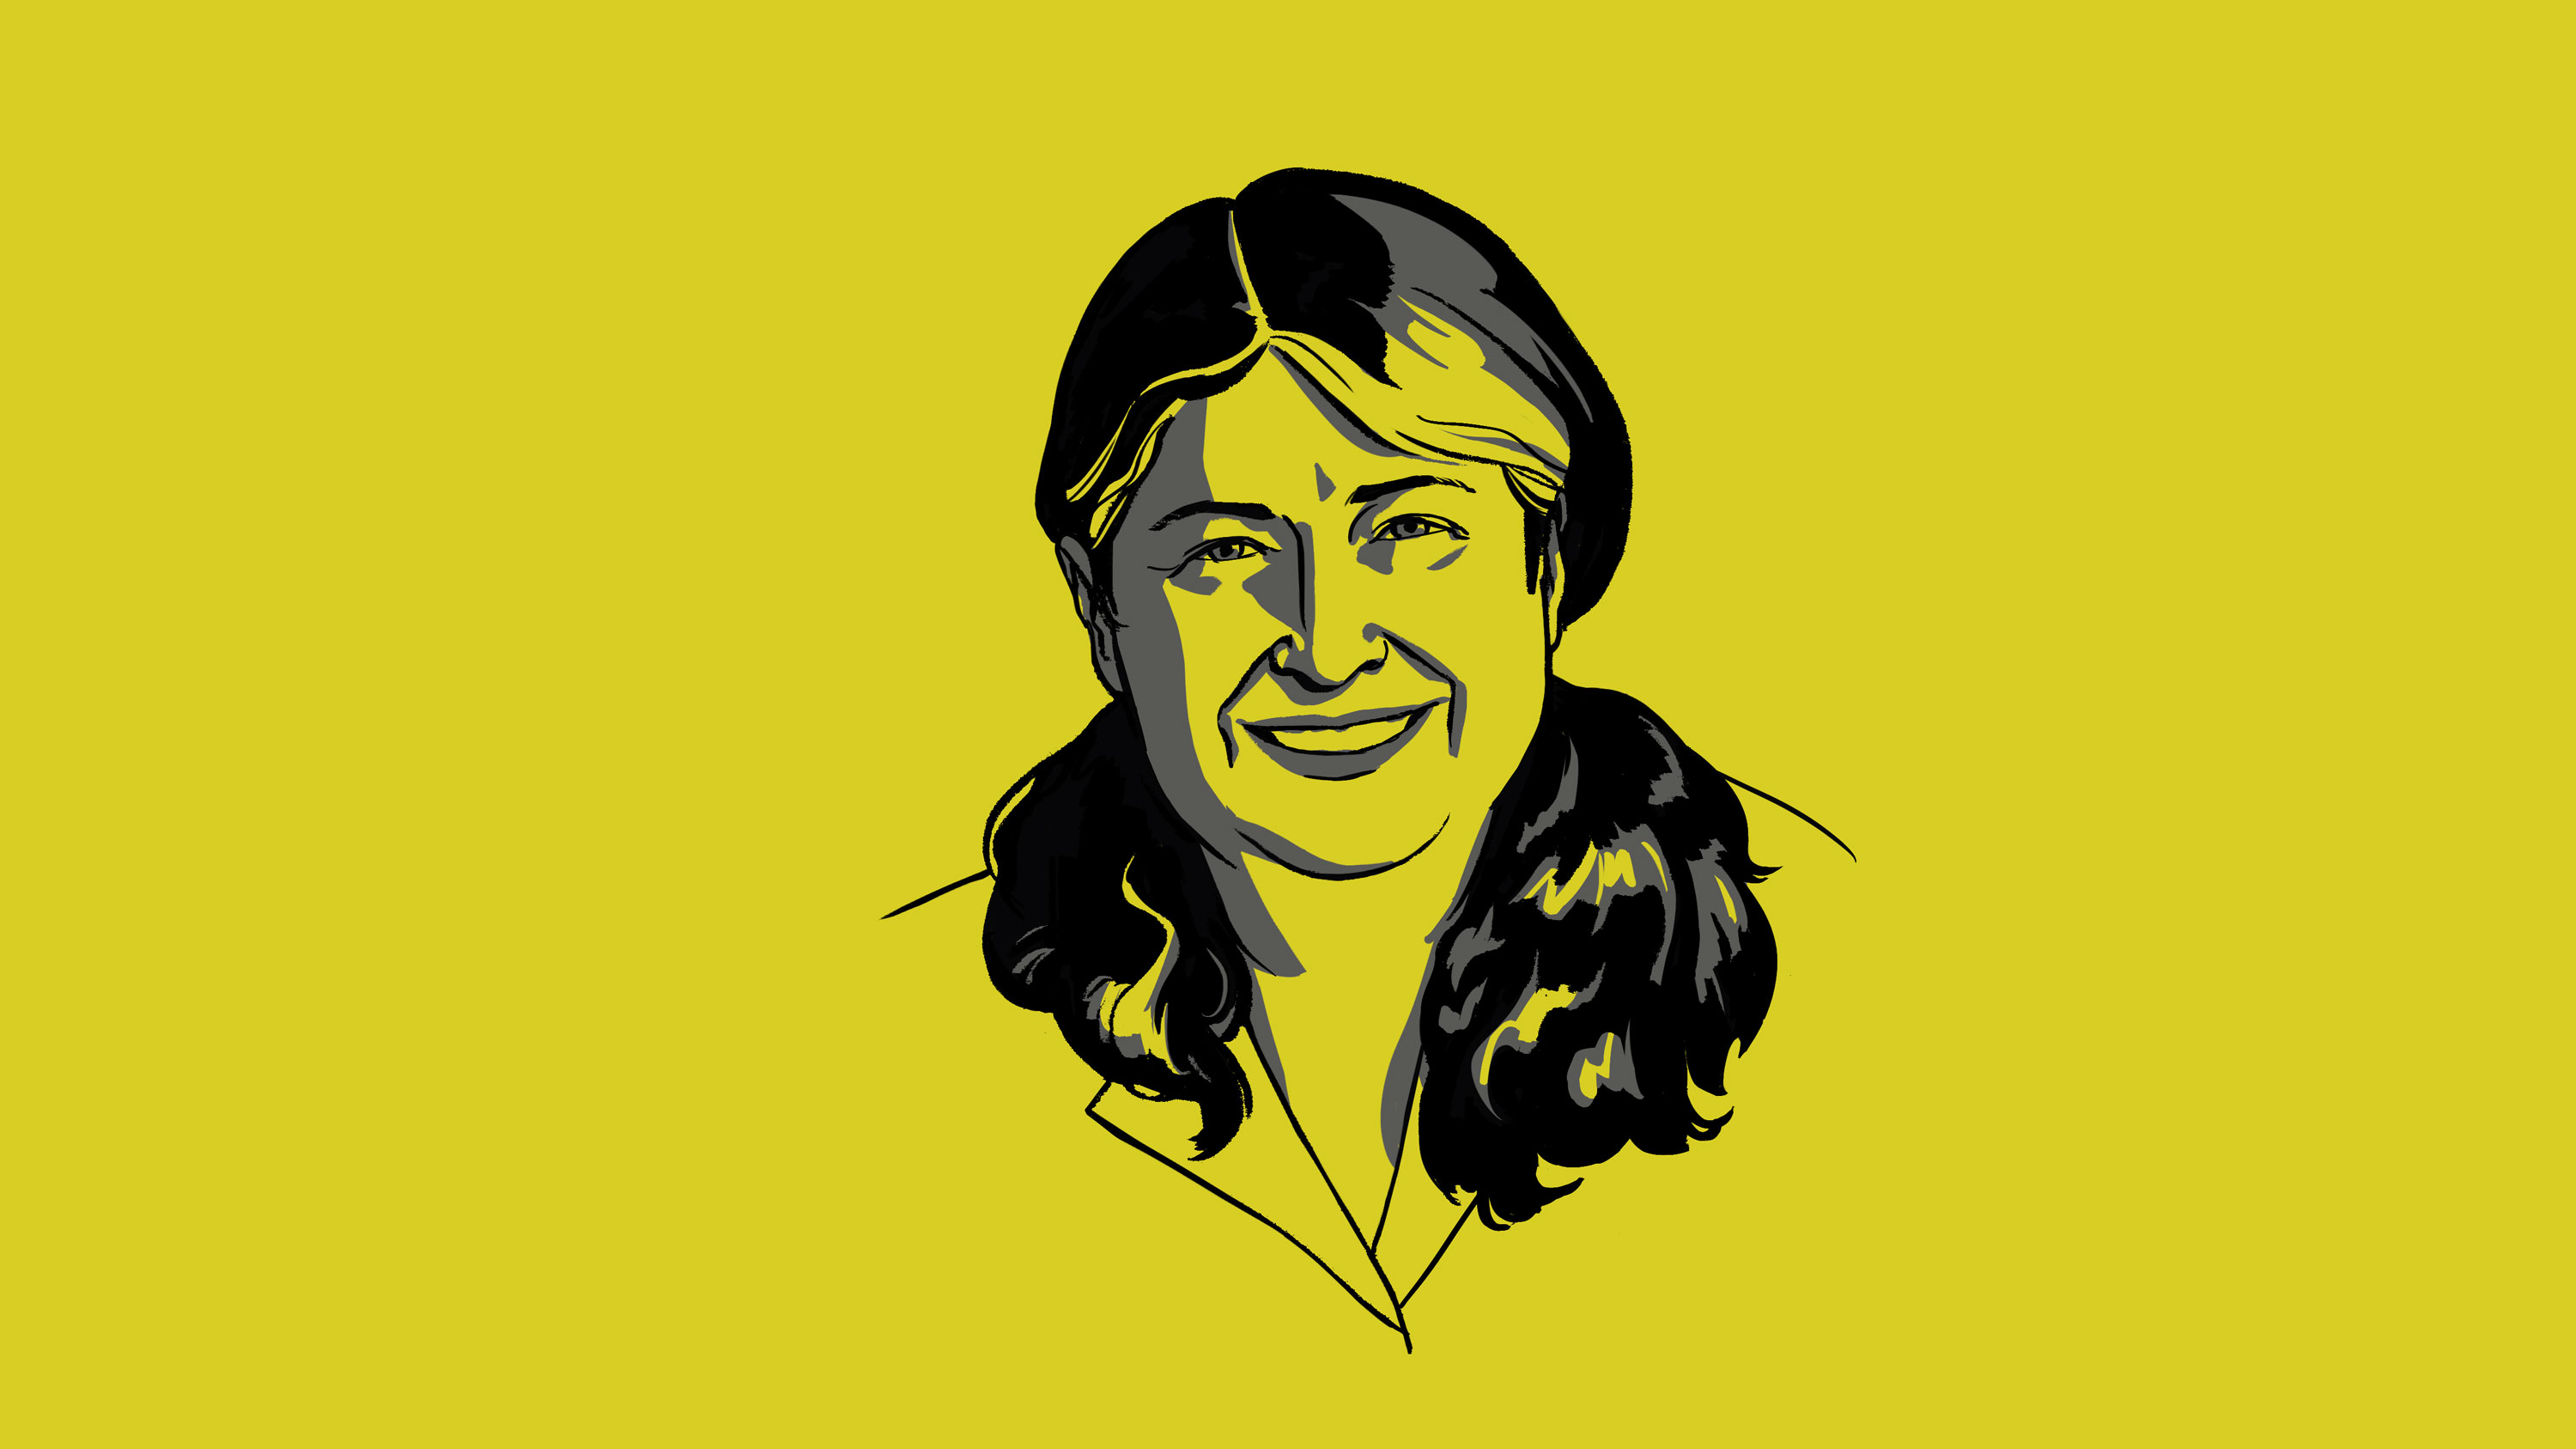 Illustration of Radia Perlman